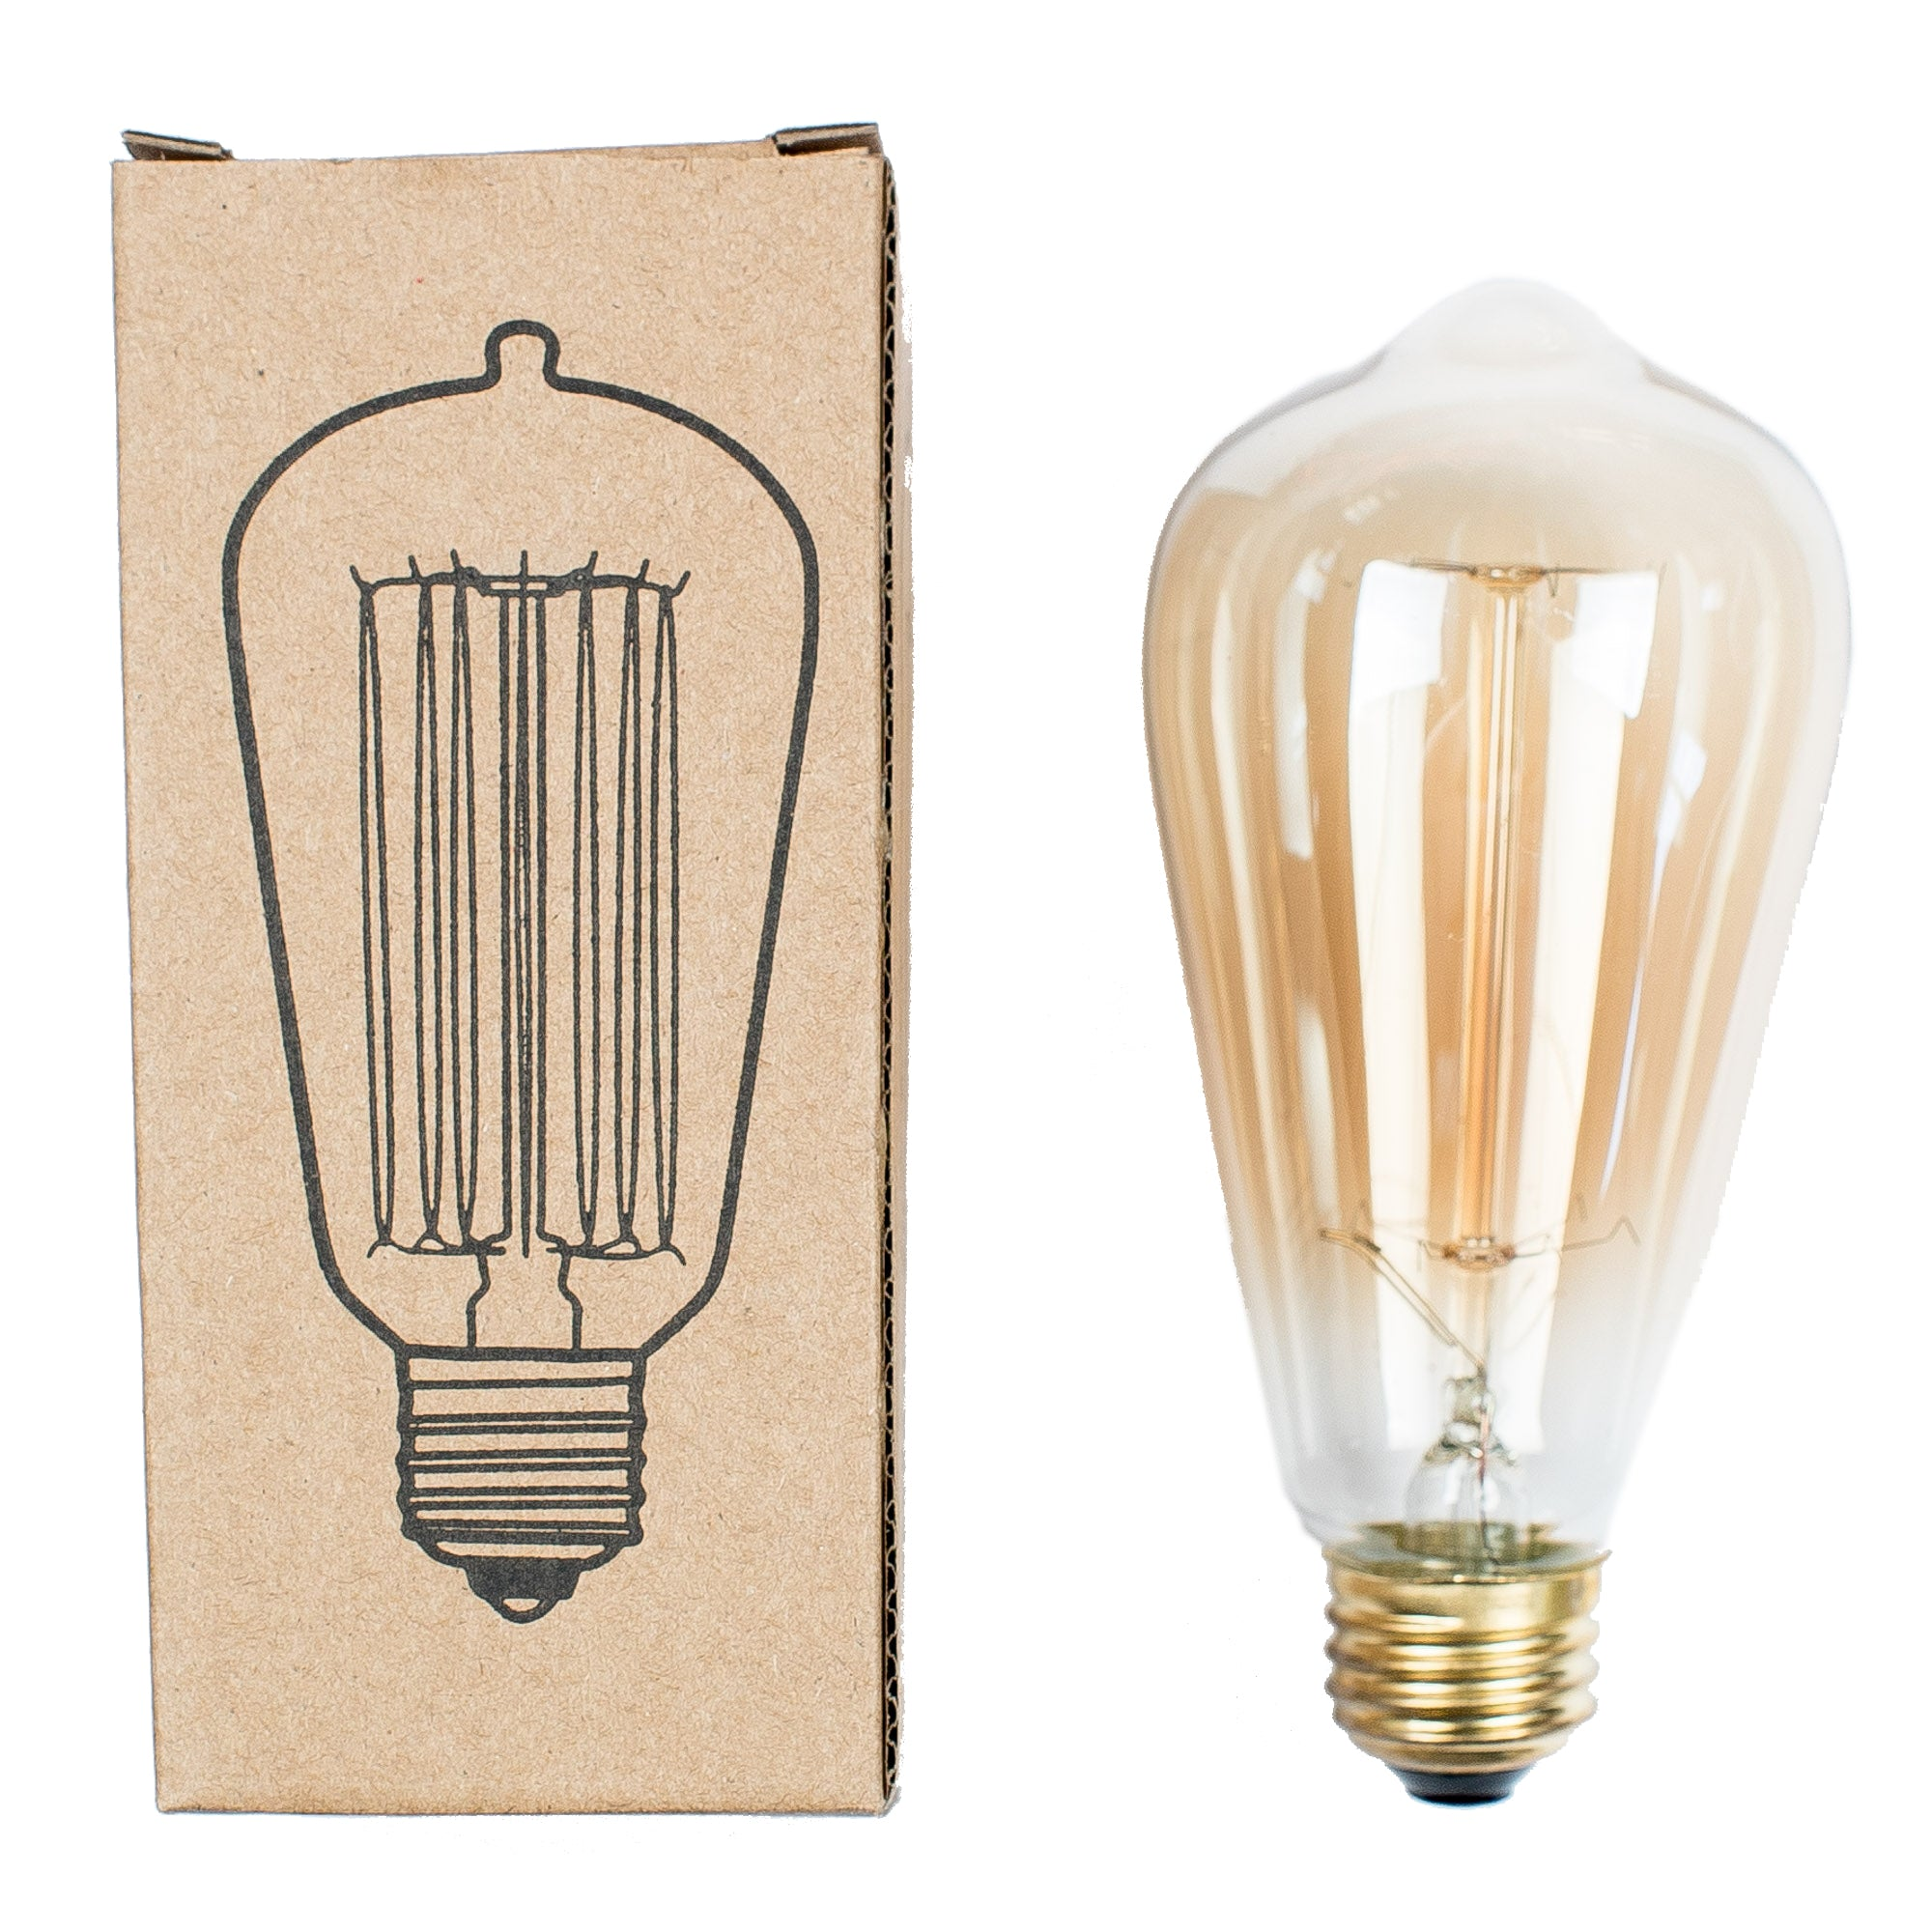 Edison Bulb and Box